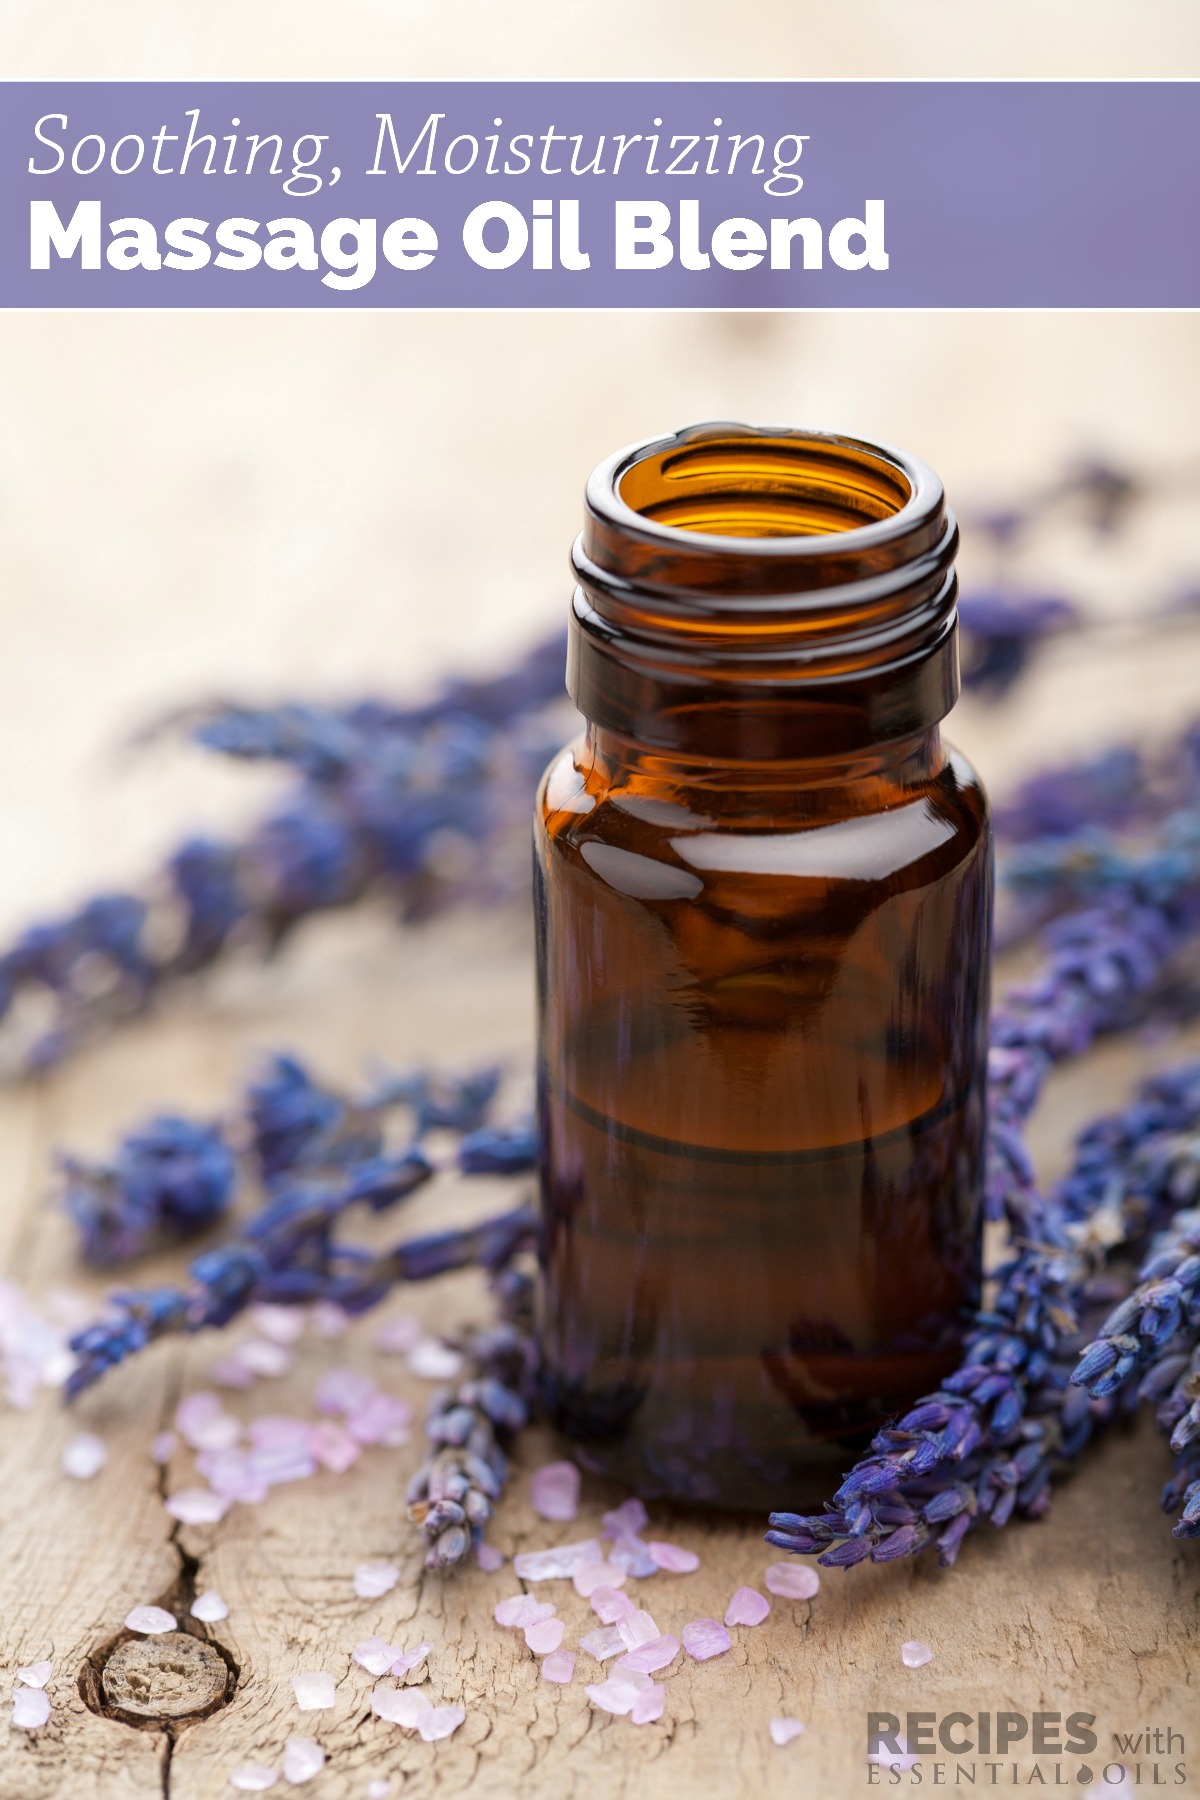 Learn how to make your own soothing, moisturizing massage oil blend that relaxes your mind and body and promotes healthful sleep, too! | RecipeswithEssentialOils.com